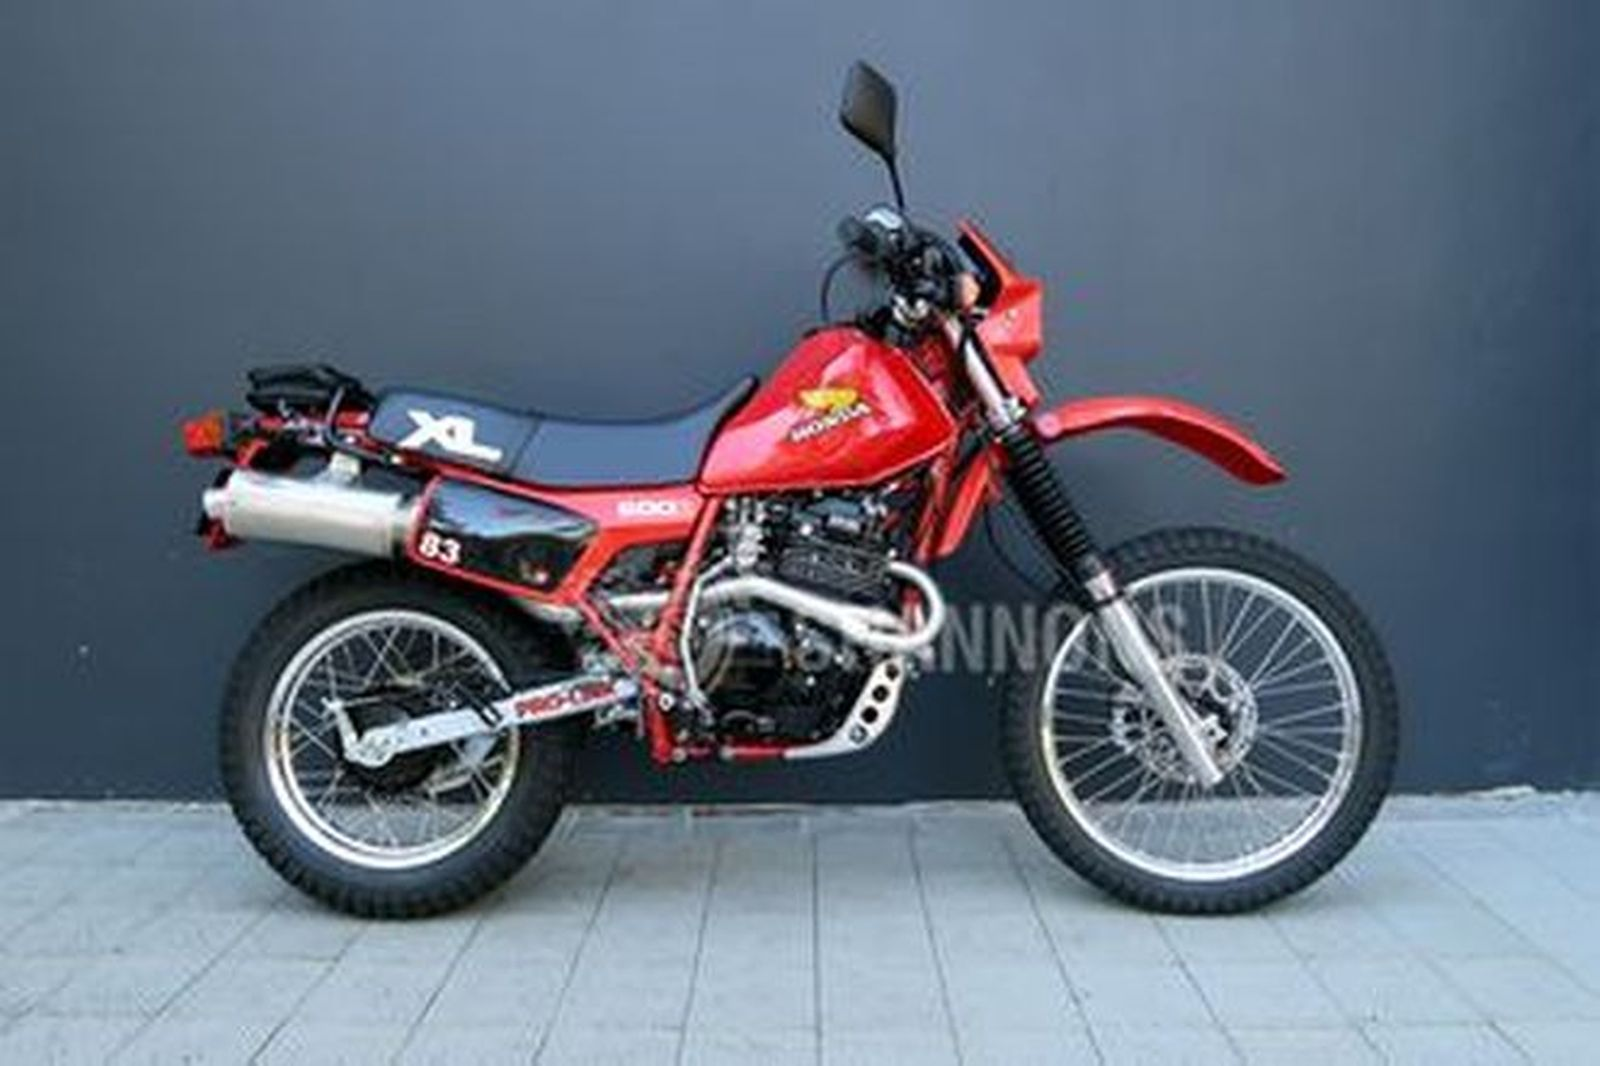 Honda XL600R Motorcycle